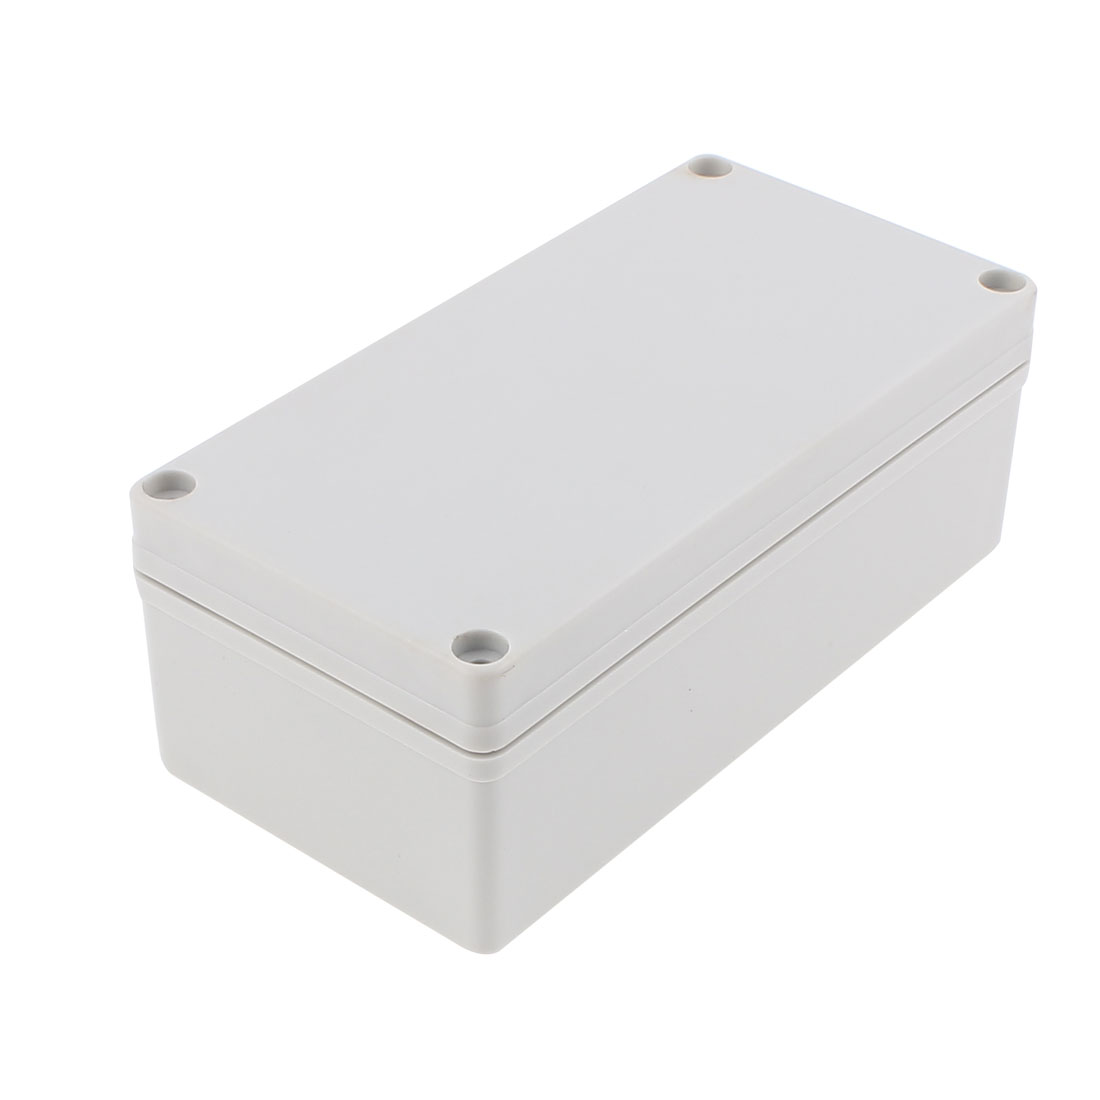 160 x 80 x 60mm Dustproof IP65 Junction Box Terminal Connecting Box Enclosure